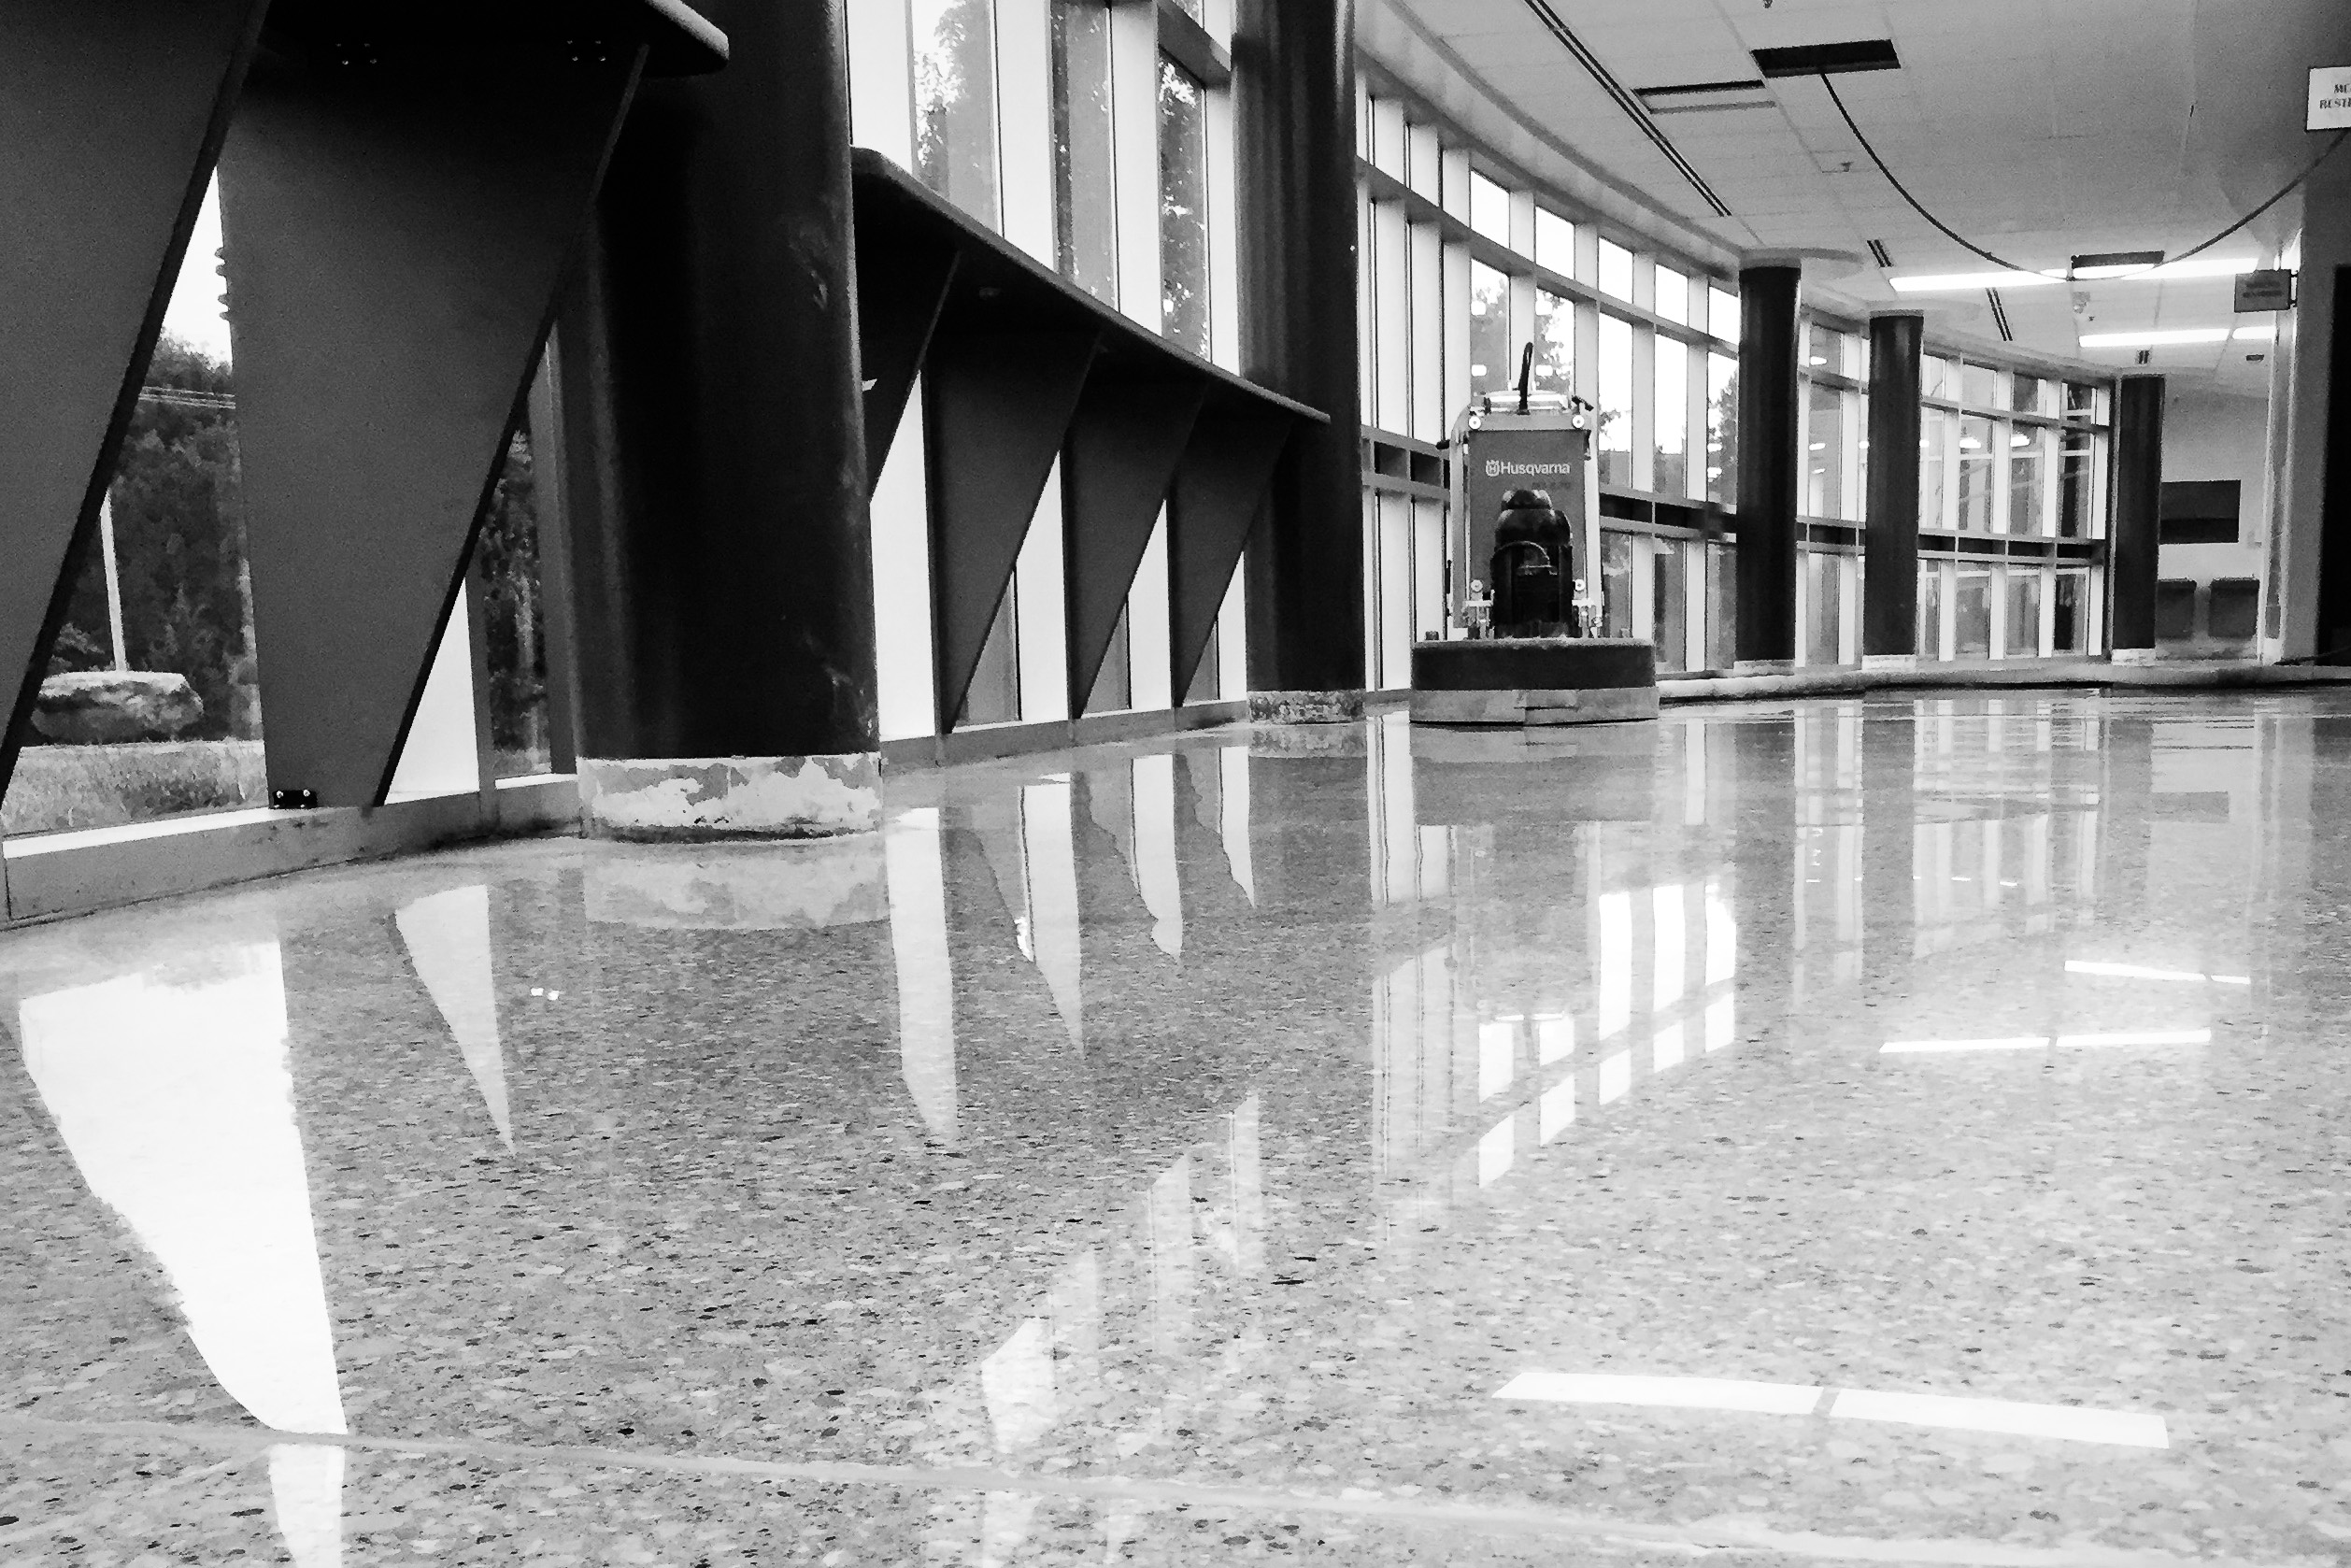 black and white photo of Blue Valley School District featuring a polished floor